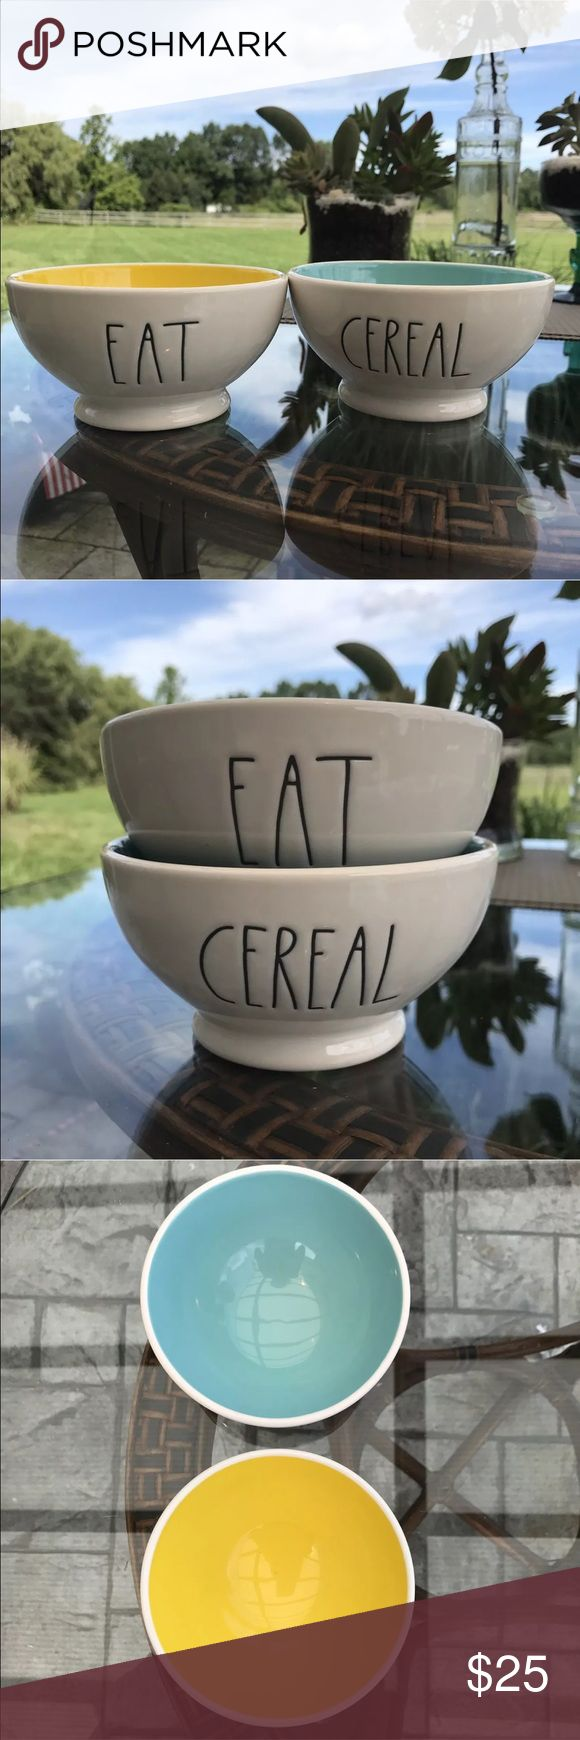 Rae Dunn By Magenta Set Of 2 EAT & CEREAL Bowls Rae Dunn By Magenta Set Of 2 EAT & CEREAL Bowls With Blue & Yellow Interiors.                                   🎁 Great Gift Idea For Your Rae Dunn Lover Or Your Favorite Cereal ❤'er!!! 🎁 Rae Dunn By Magenta Other